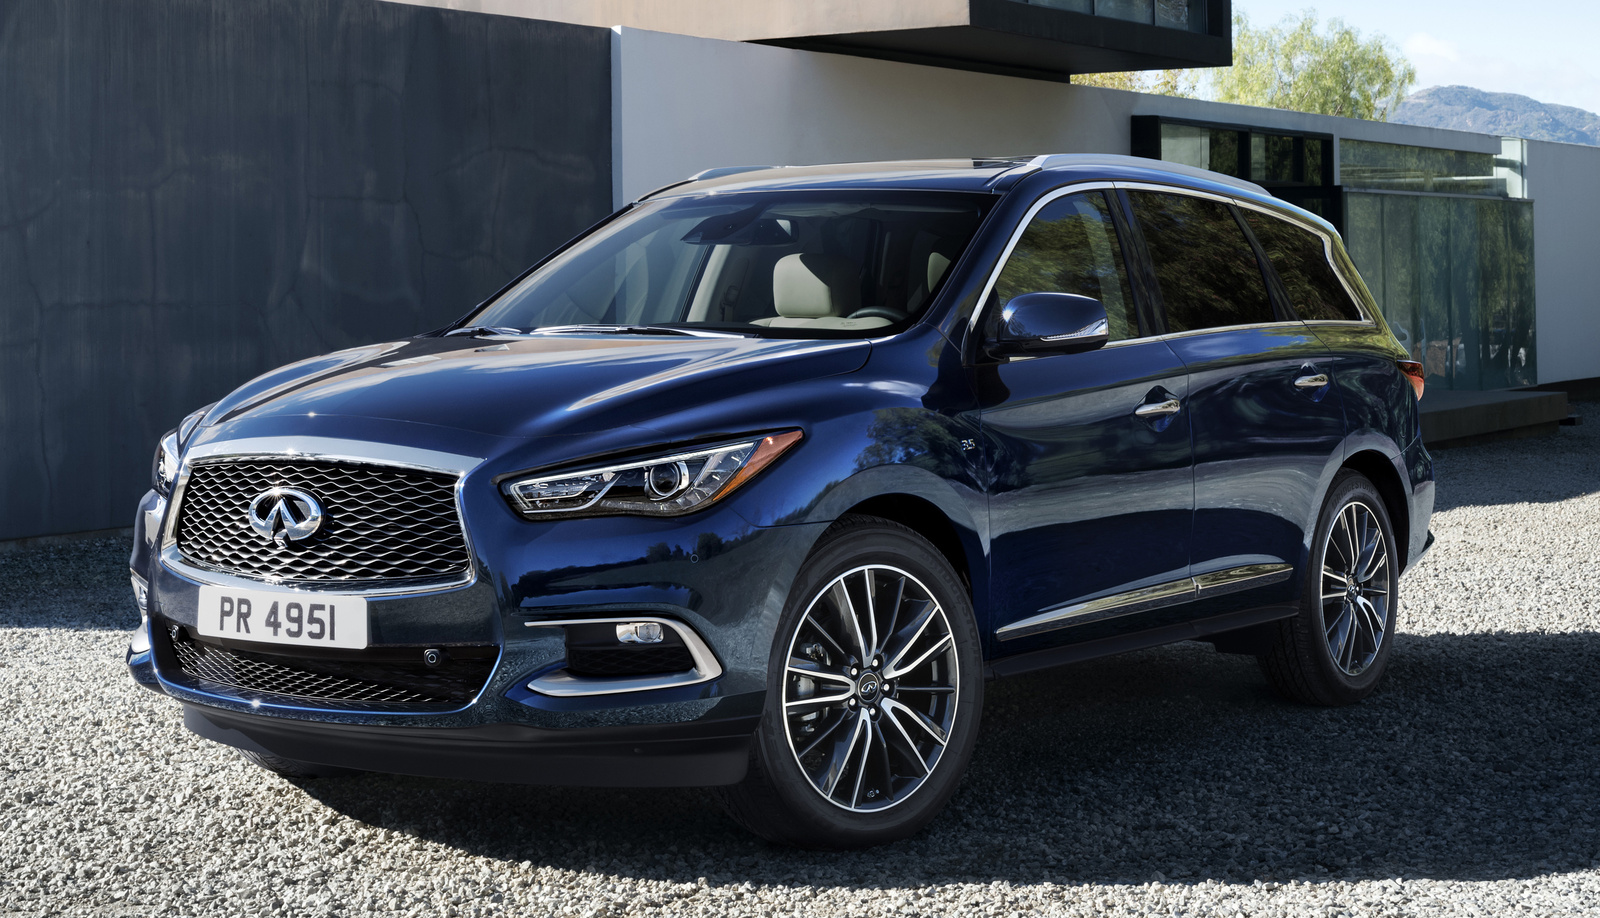 Used Infiniti Q60 >> 2016 / 2017 INFINITI QX60 for Sale in Columbia, SC - CarGurus